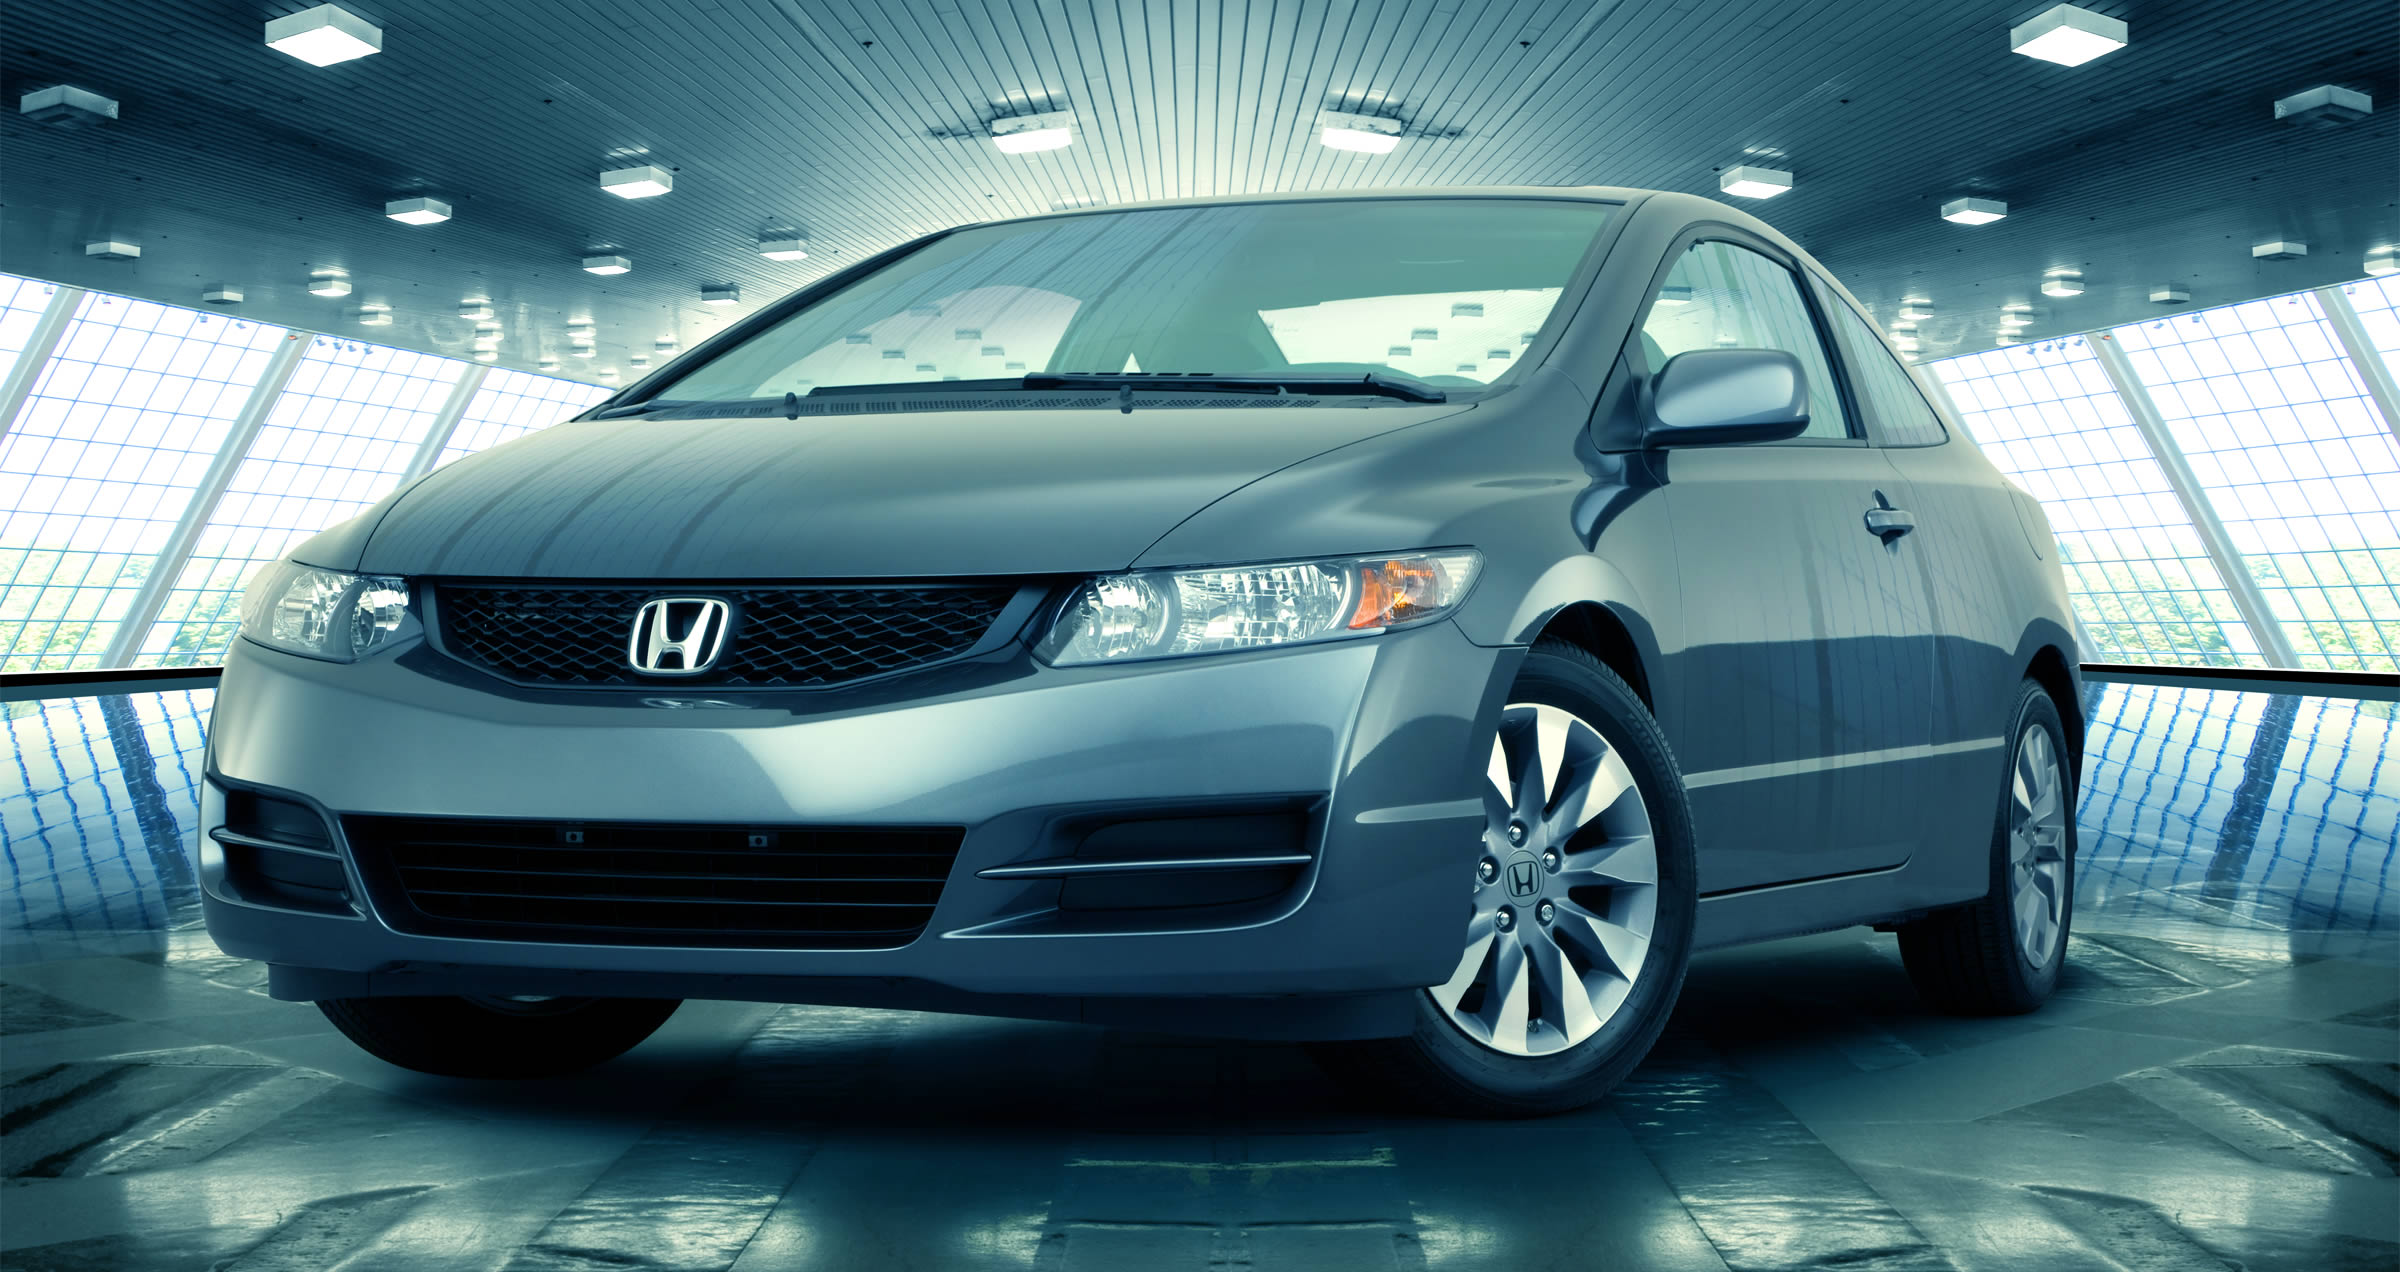 event ca fremont oakland the htm bay lease alameda sales area honda a hayward in fit